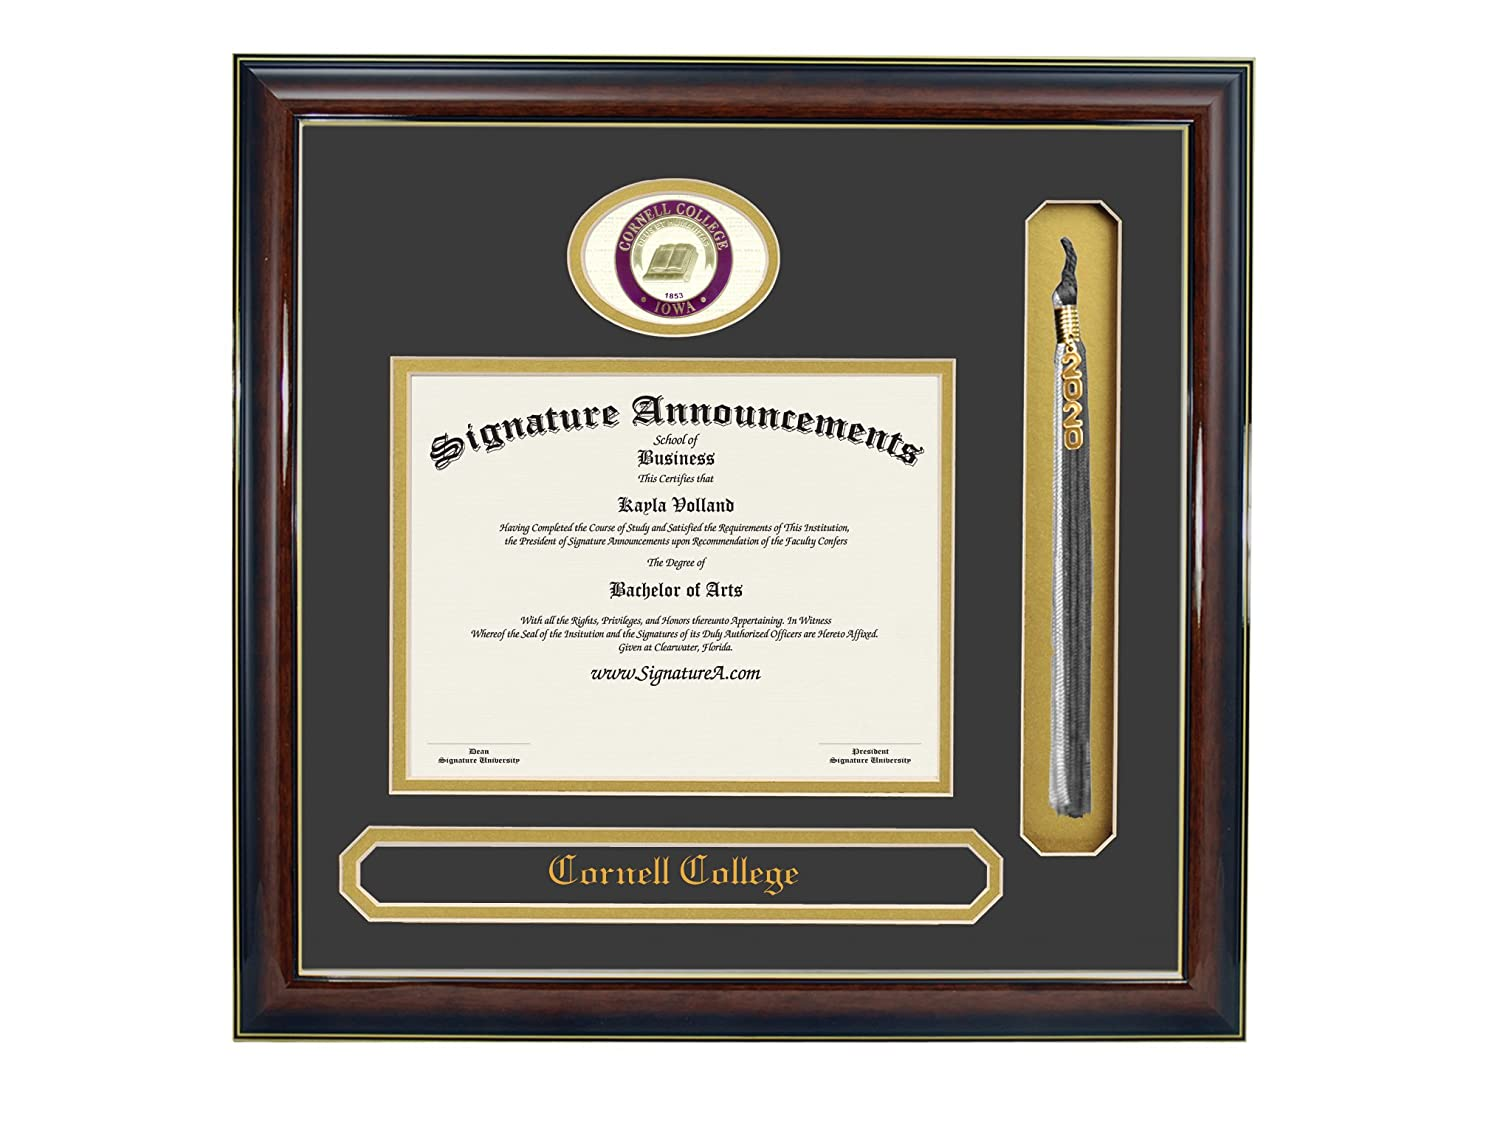 Signature Announcements Cornell-College Undergraduate Sculpted Foil Seal Name /& Tassel Graduation Diploma Frame 16 x 16 Gold Accent Gloss Mahogany